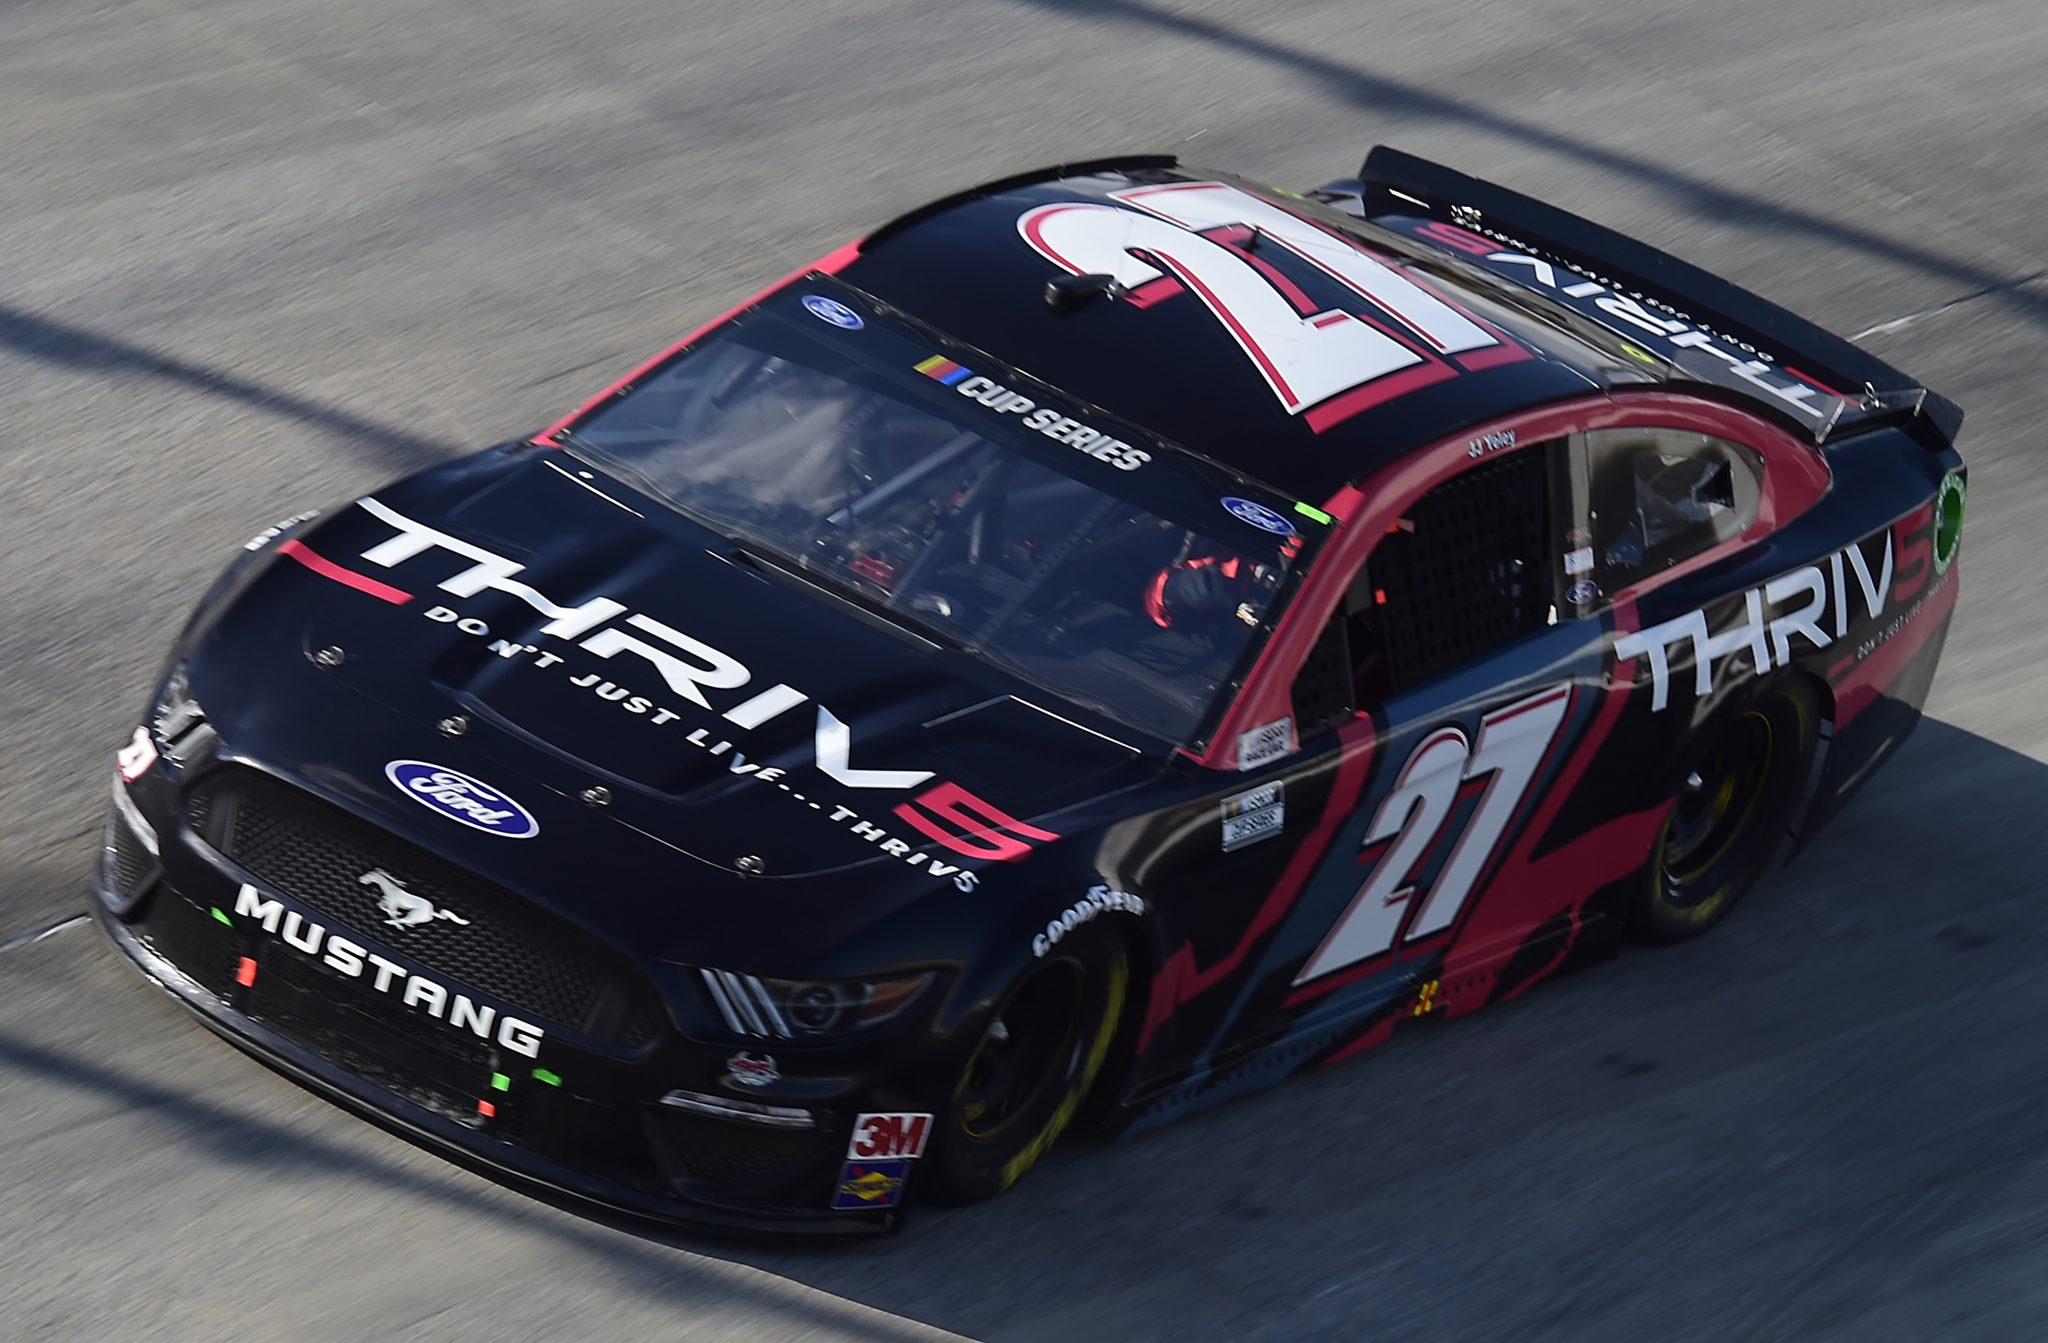 DOVER, DELAWARE - AUGUST 23: JJ Yeley, driver of the #27 Thriv5 Ford, drives during the NASCAR Cup Series Drydene 311 at Dover International Speedway on August 23, 2020 in Dover, Delaware. (Photo by Jared C. Tilton/Getty Images) | Getty Images